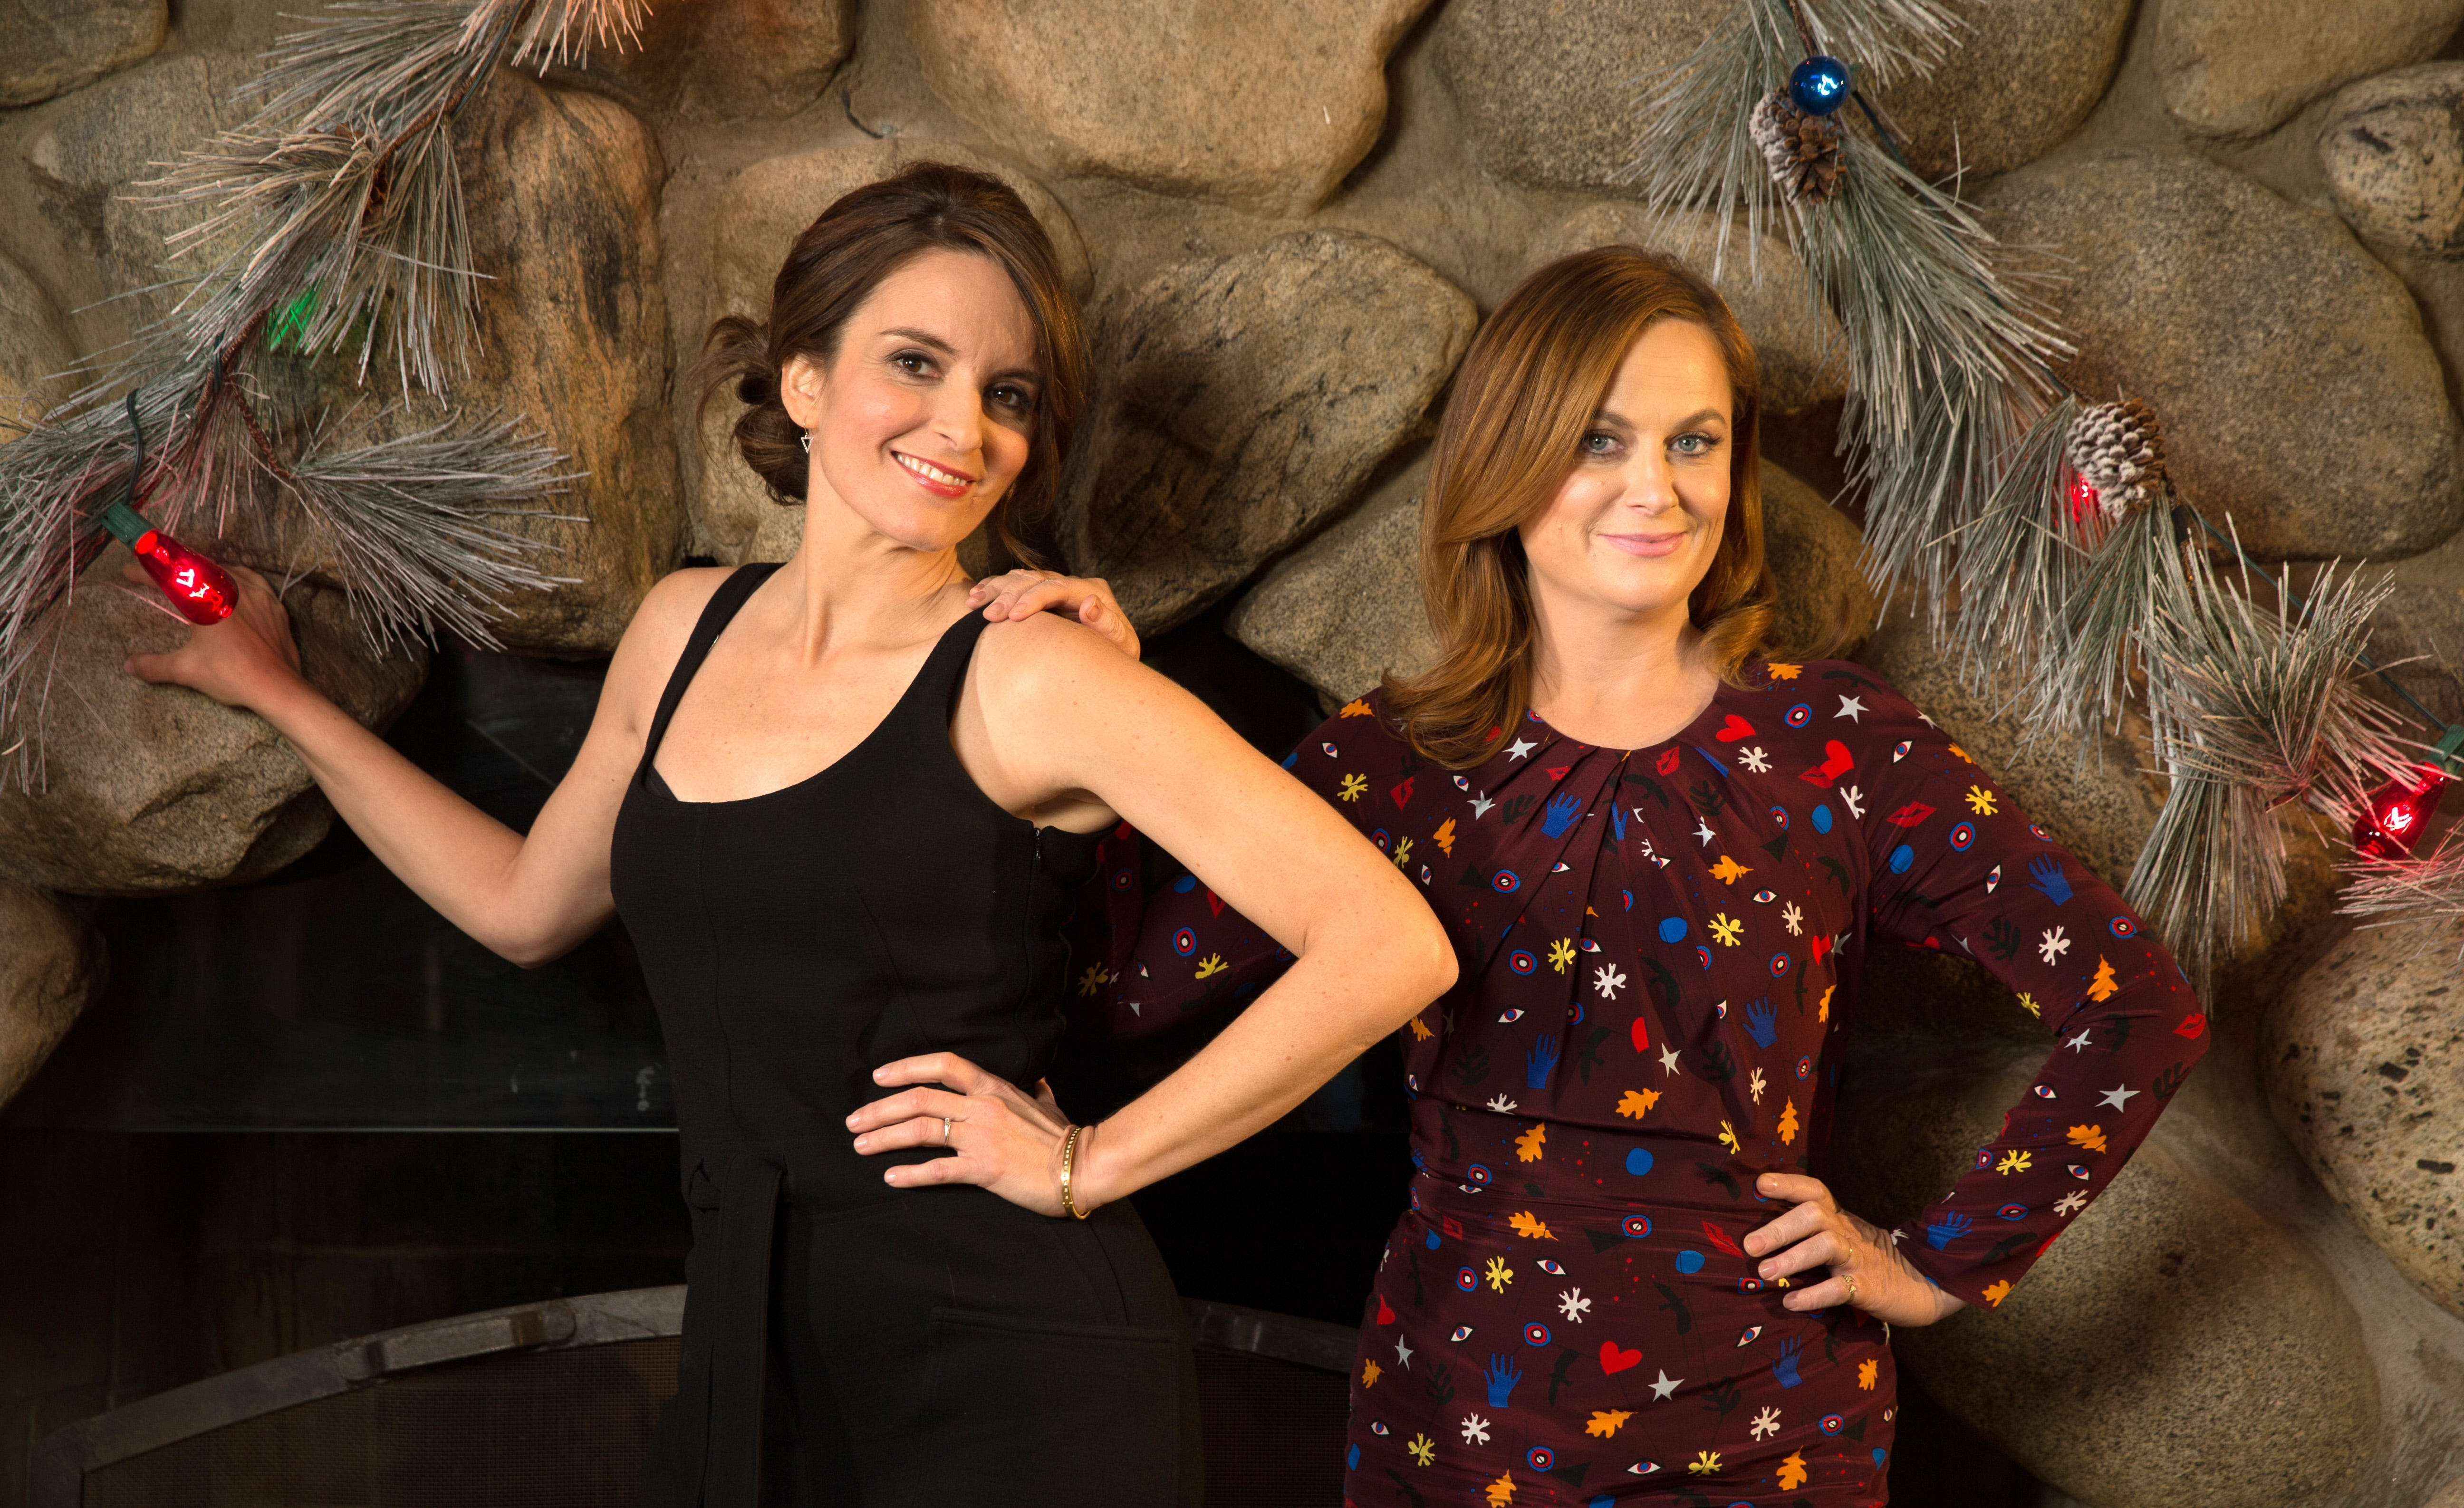 Watch Tina Fey and Amy Poehler Asked to Host Golden Globes Again video